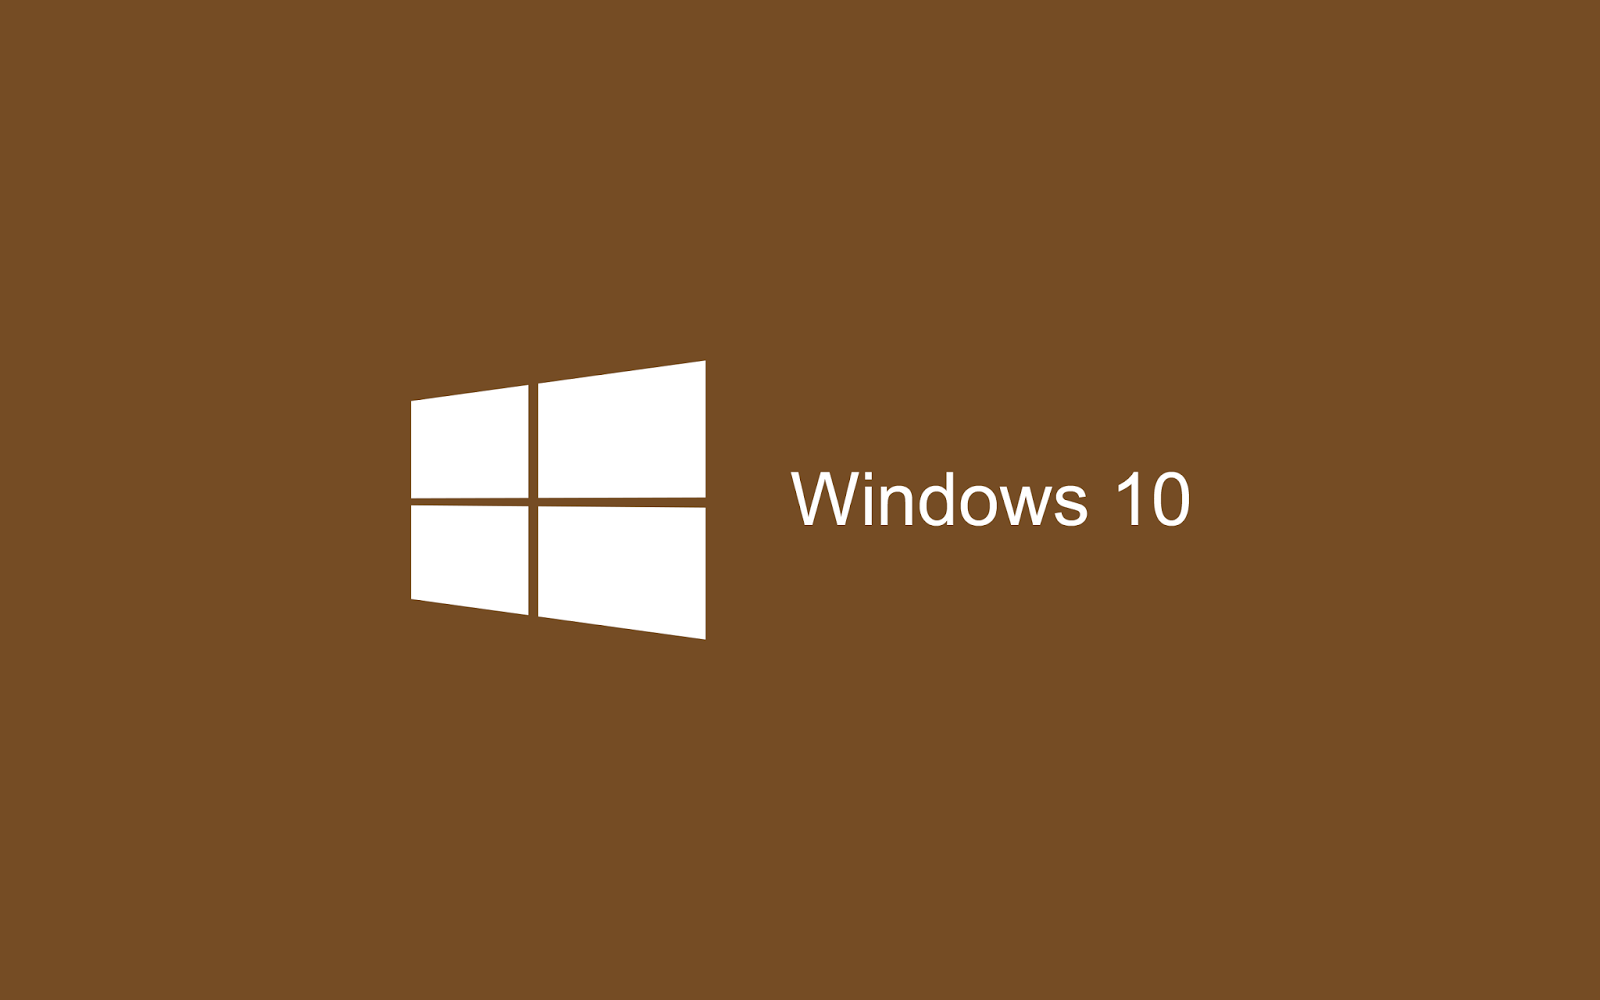 http://windows10wallpaper.net/